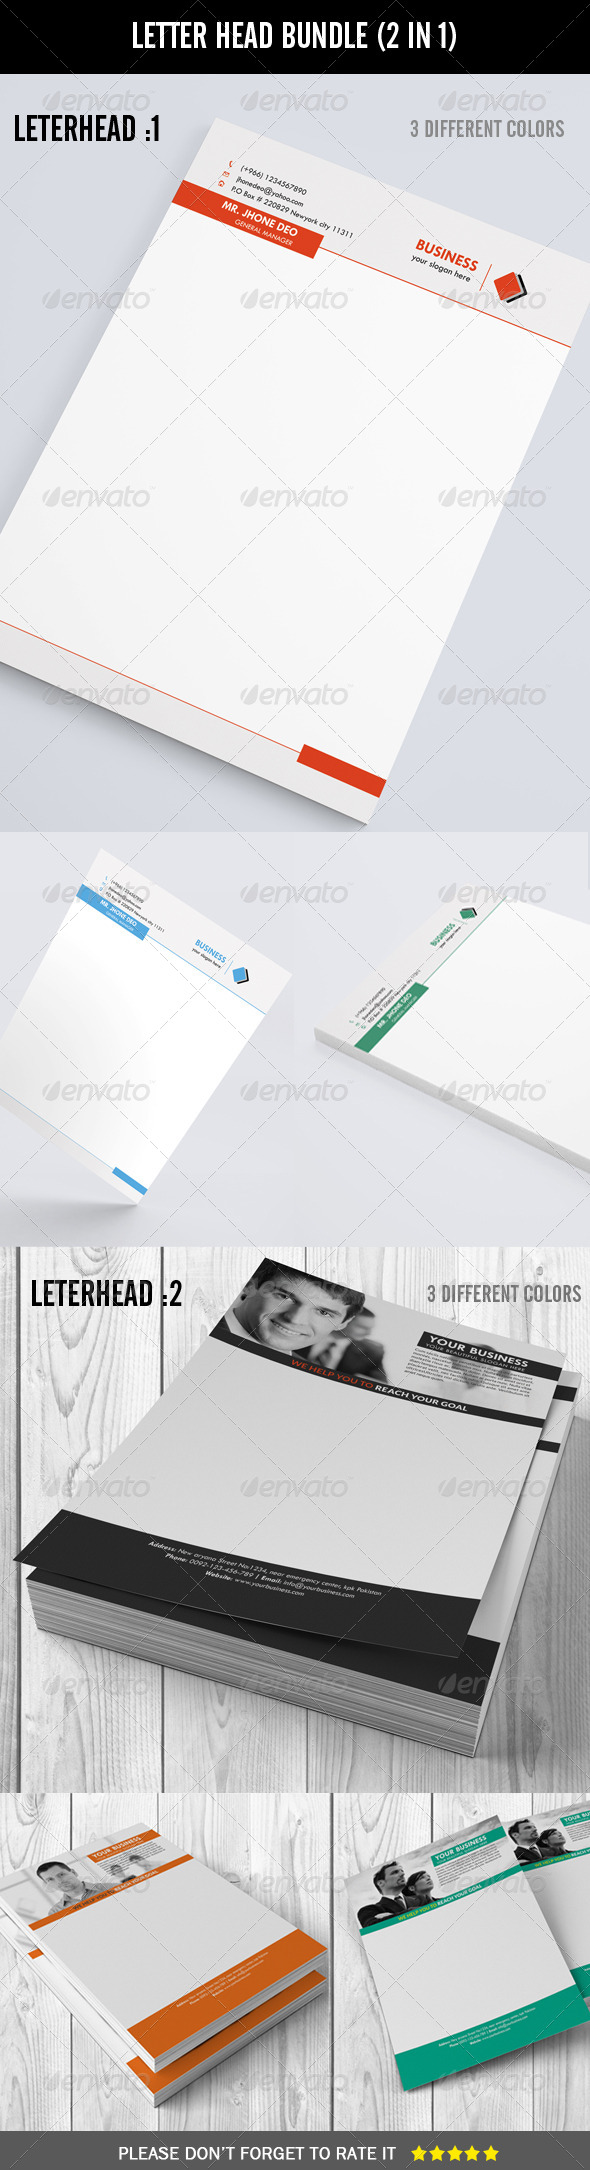 Letter Head Bundle (2 in 1) - Stationery Print Templates